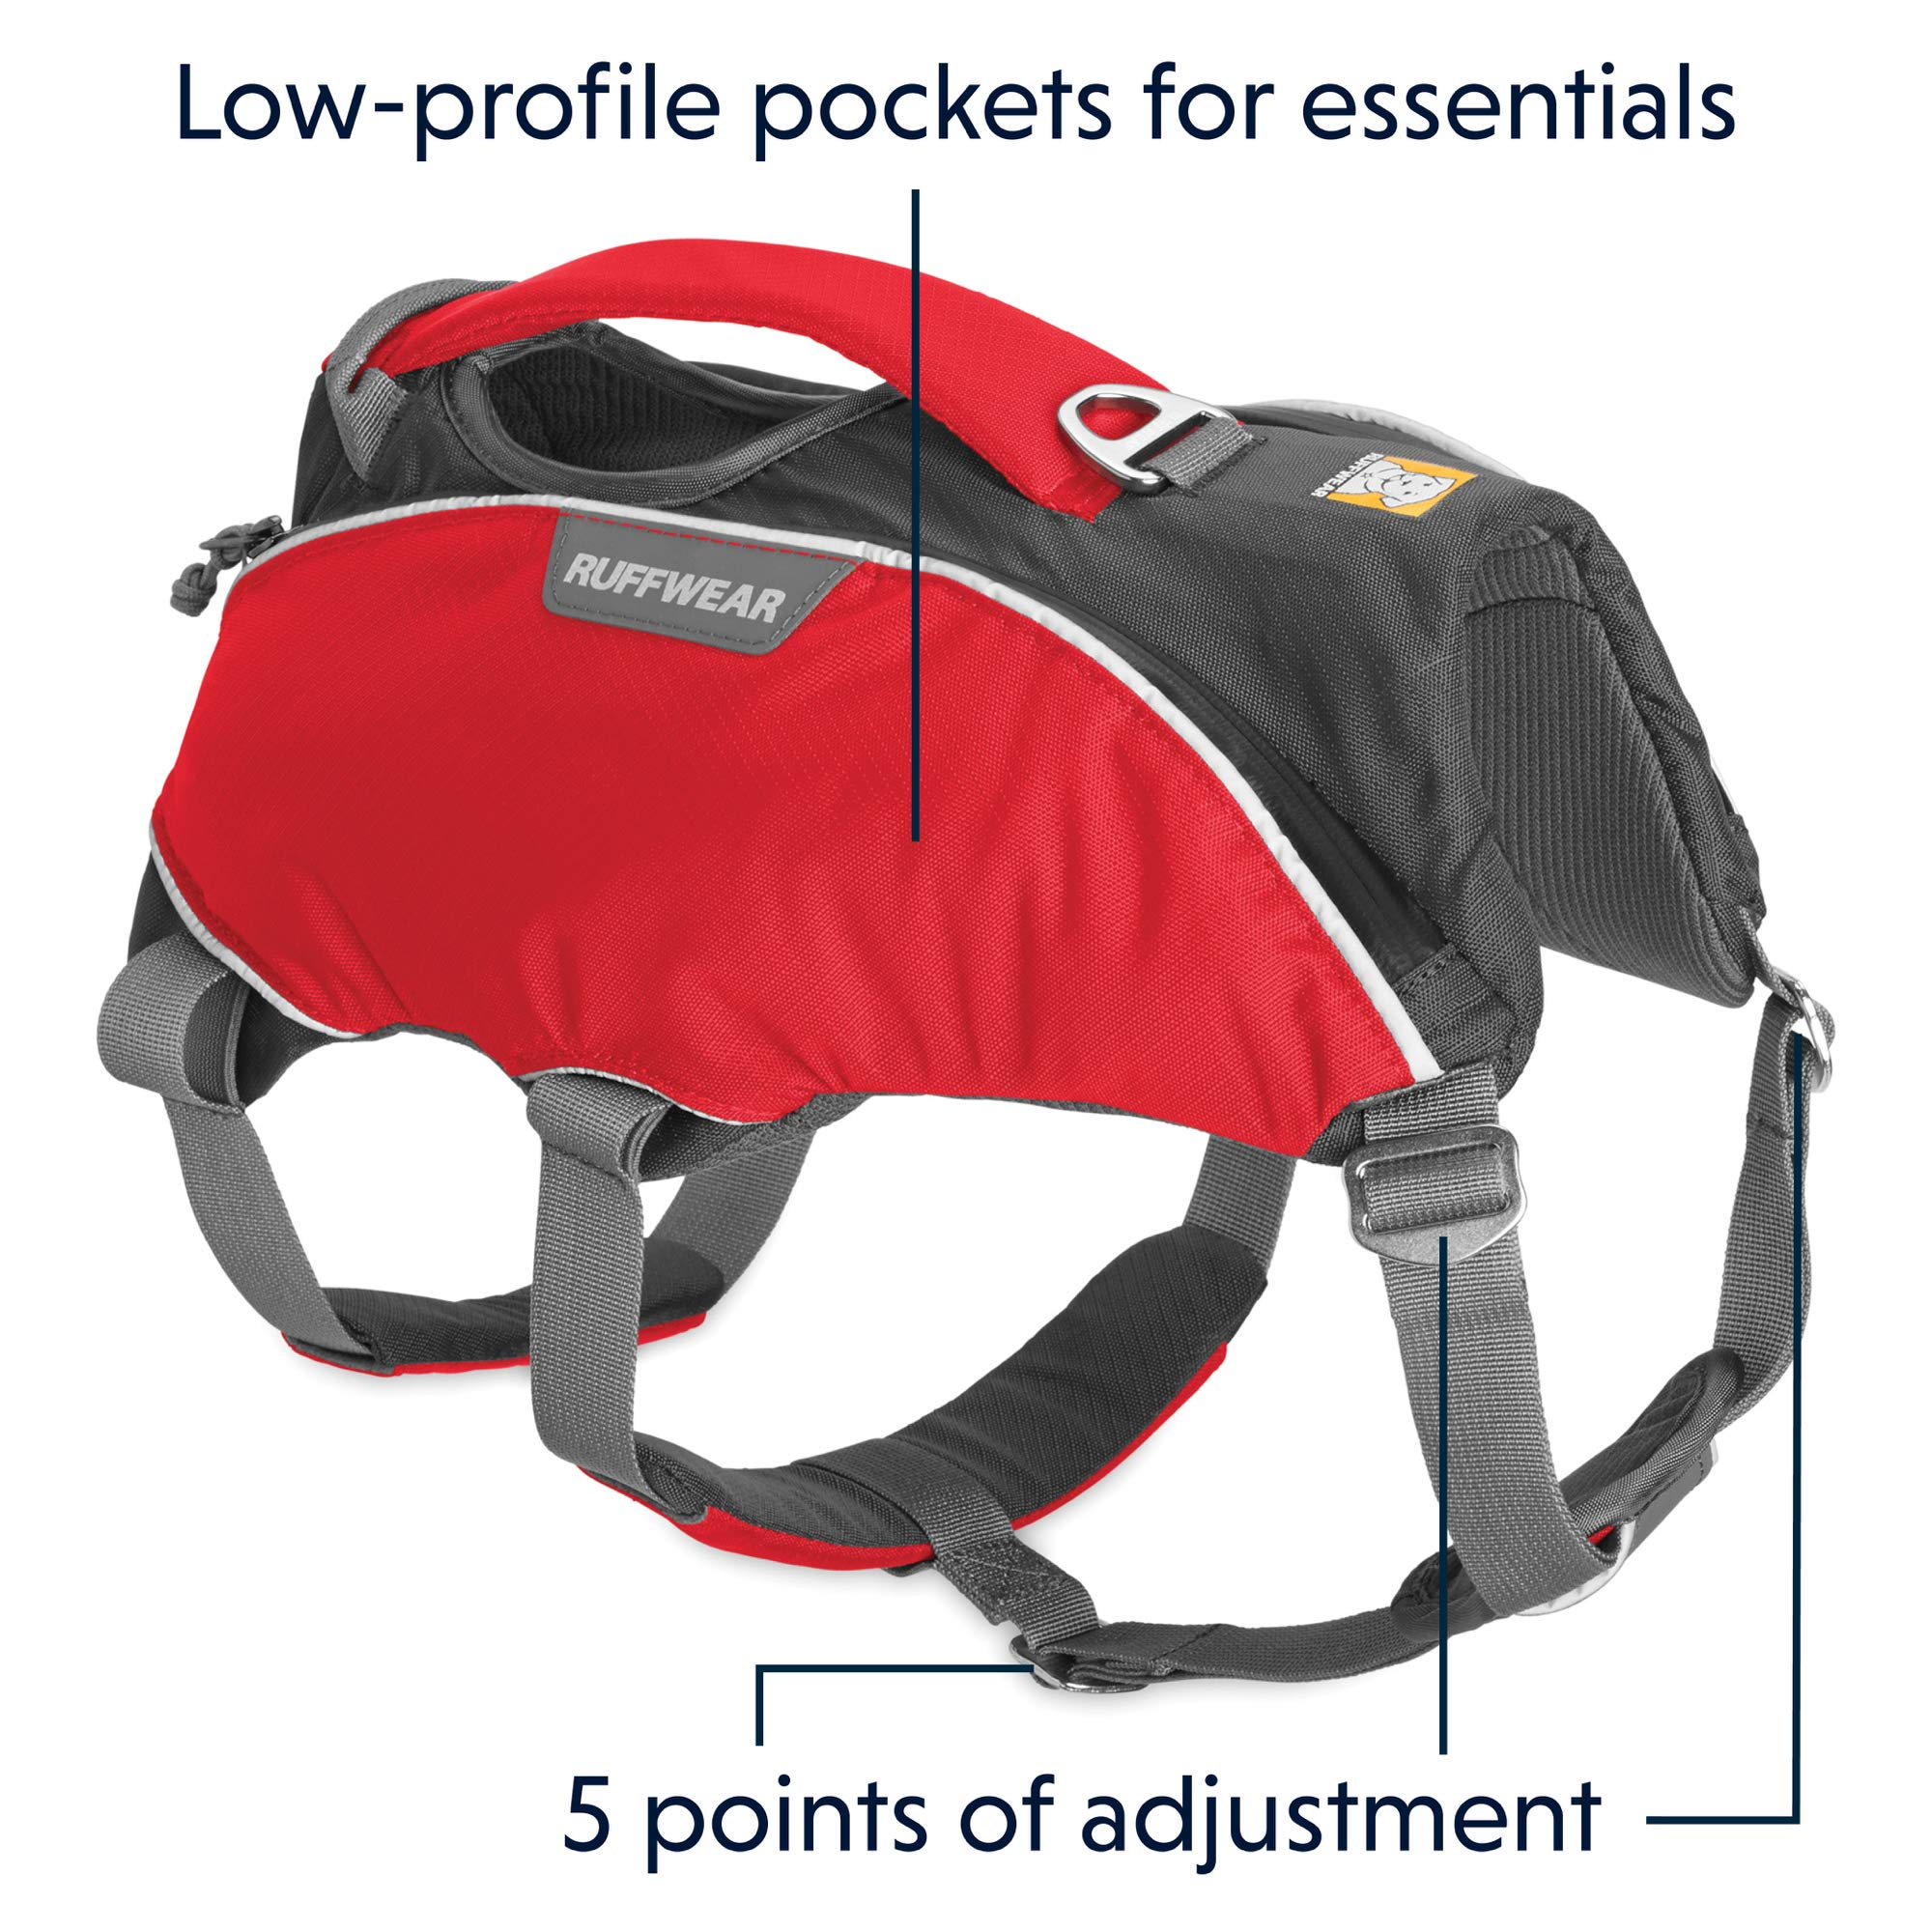 RUFFWEAR - Web Master Pro Dog Harness, Search and Rescue, Service Dogs, Snowboarding, Skiing, Everyday Wear, Red Currant, Small by RUFFWEAR (Image #5)